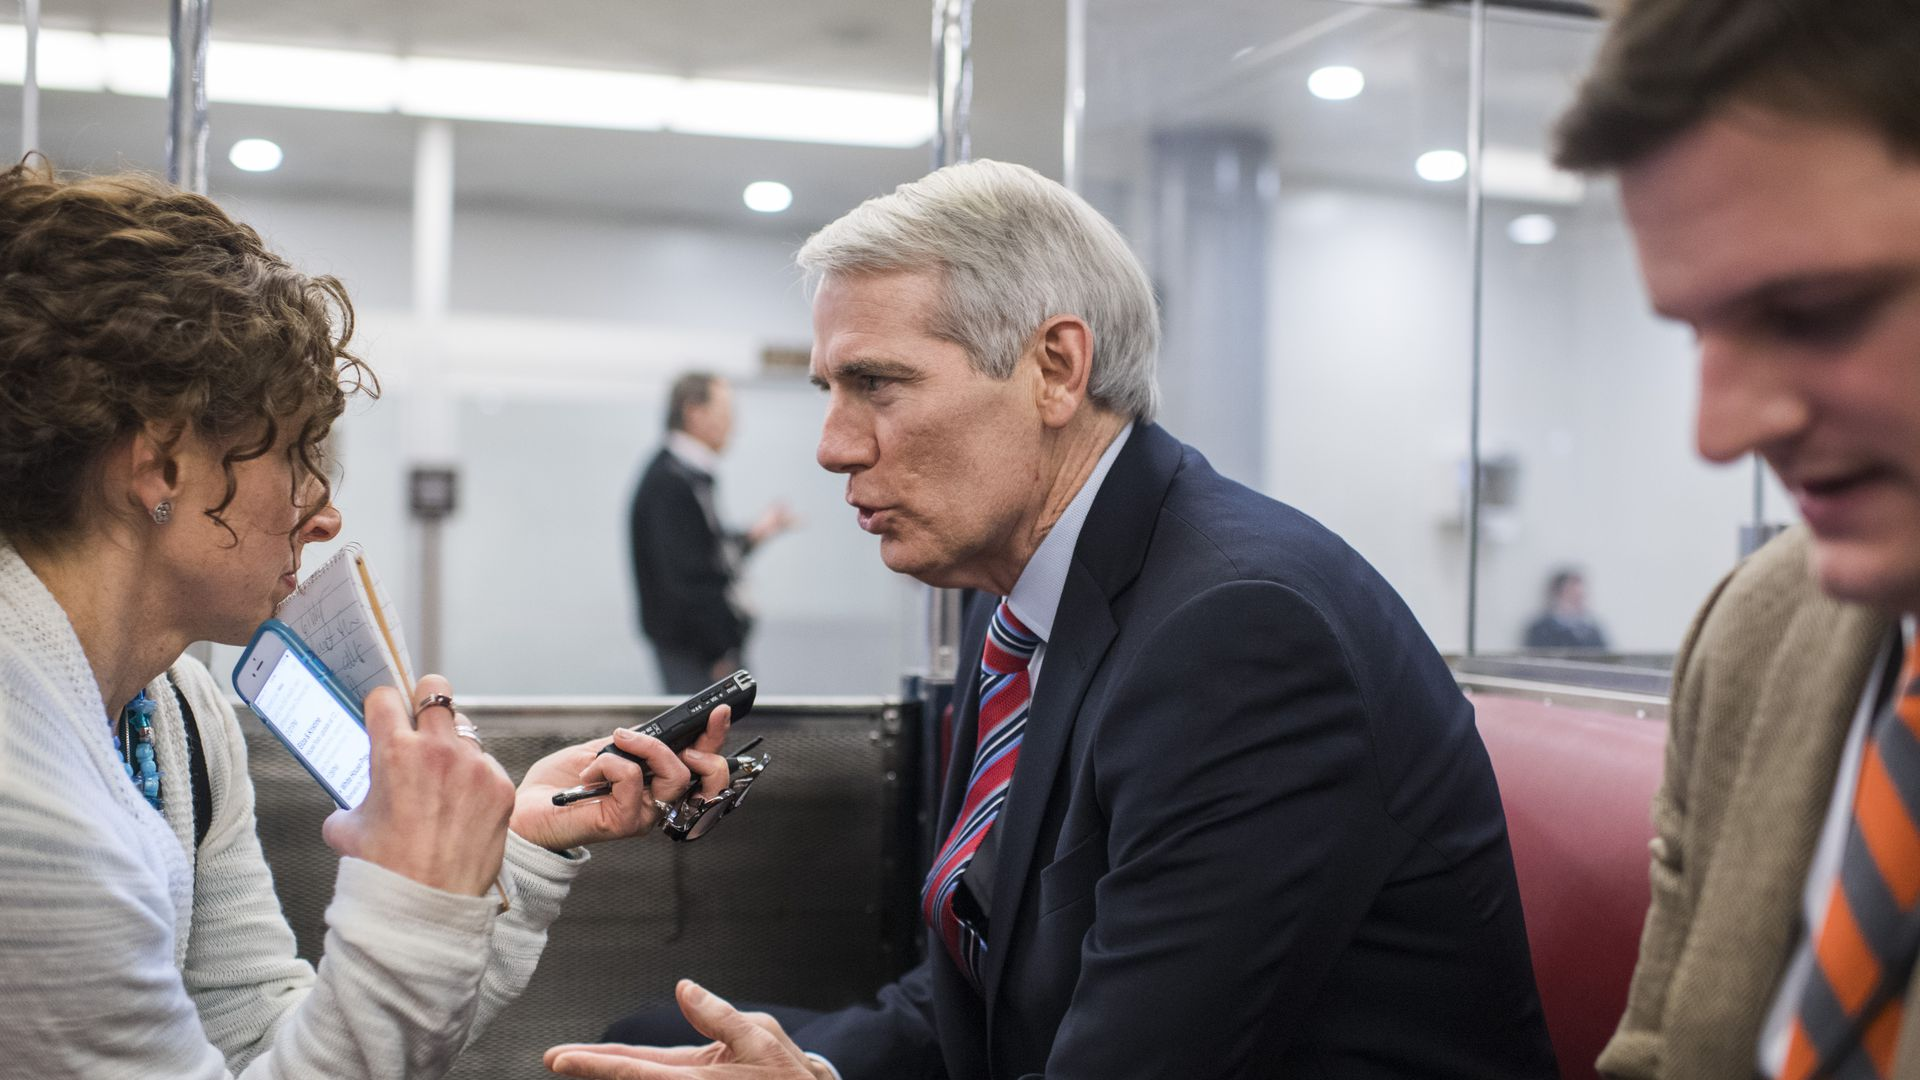 Senator Rob Portman talks to reporters on a train